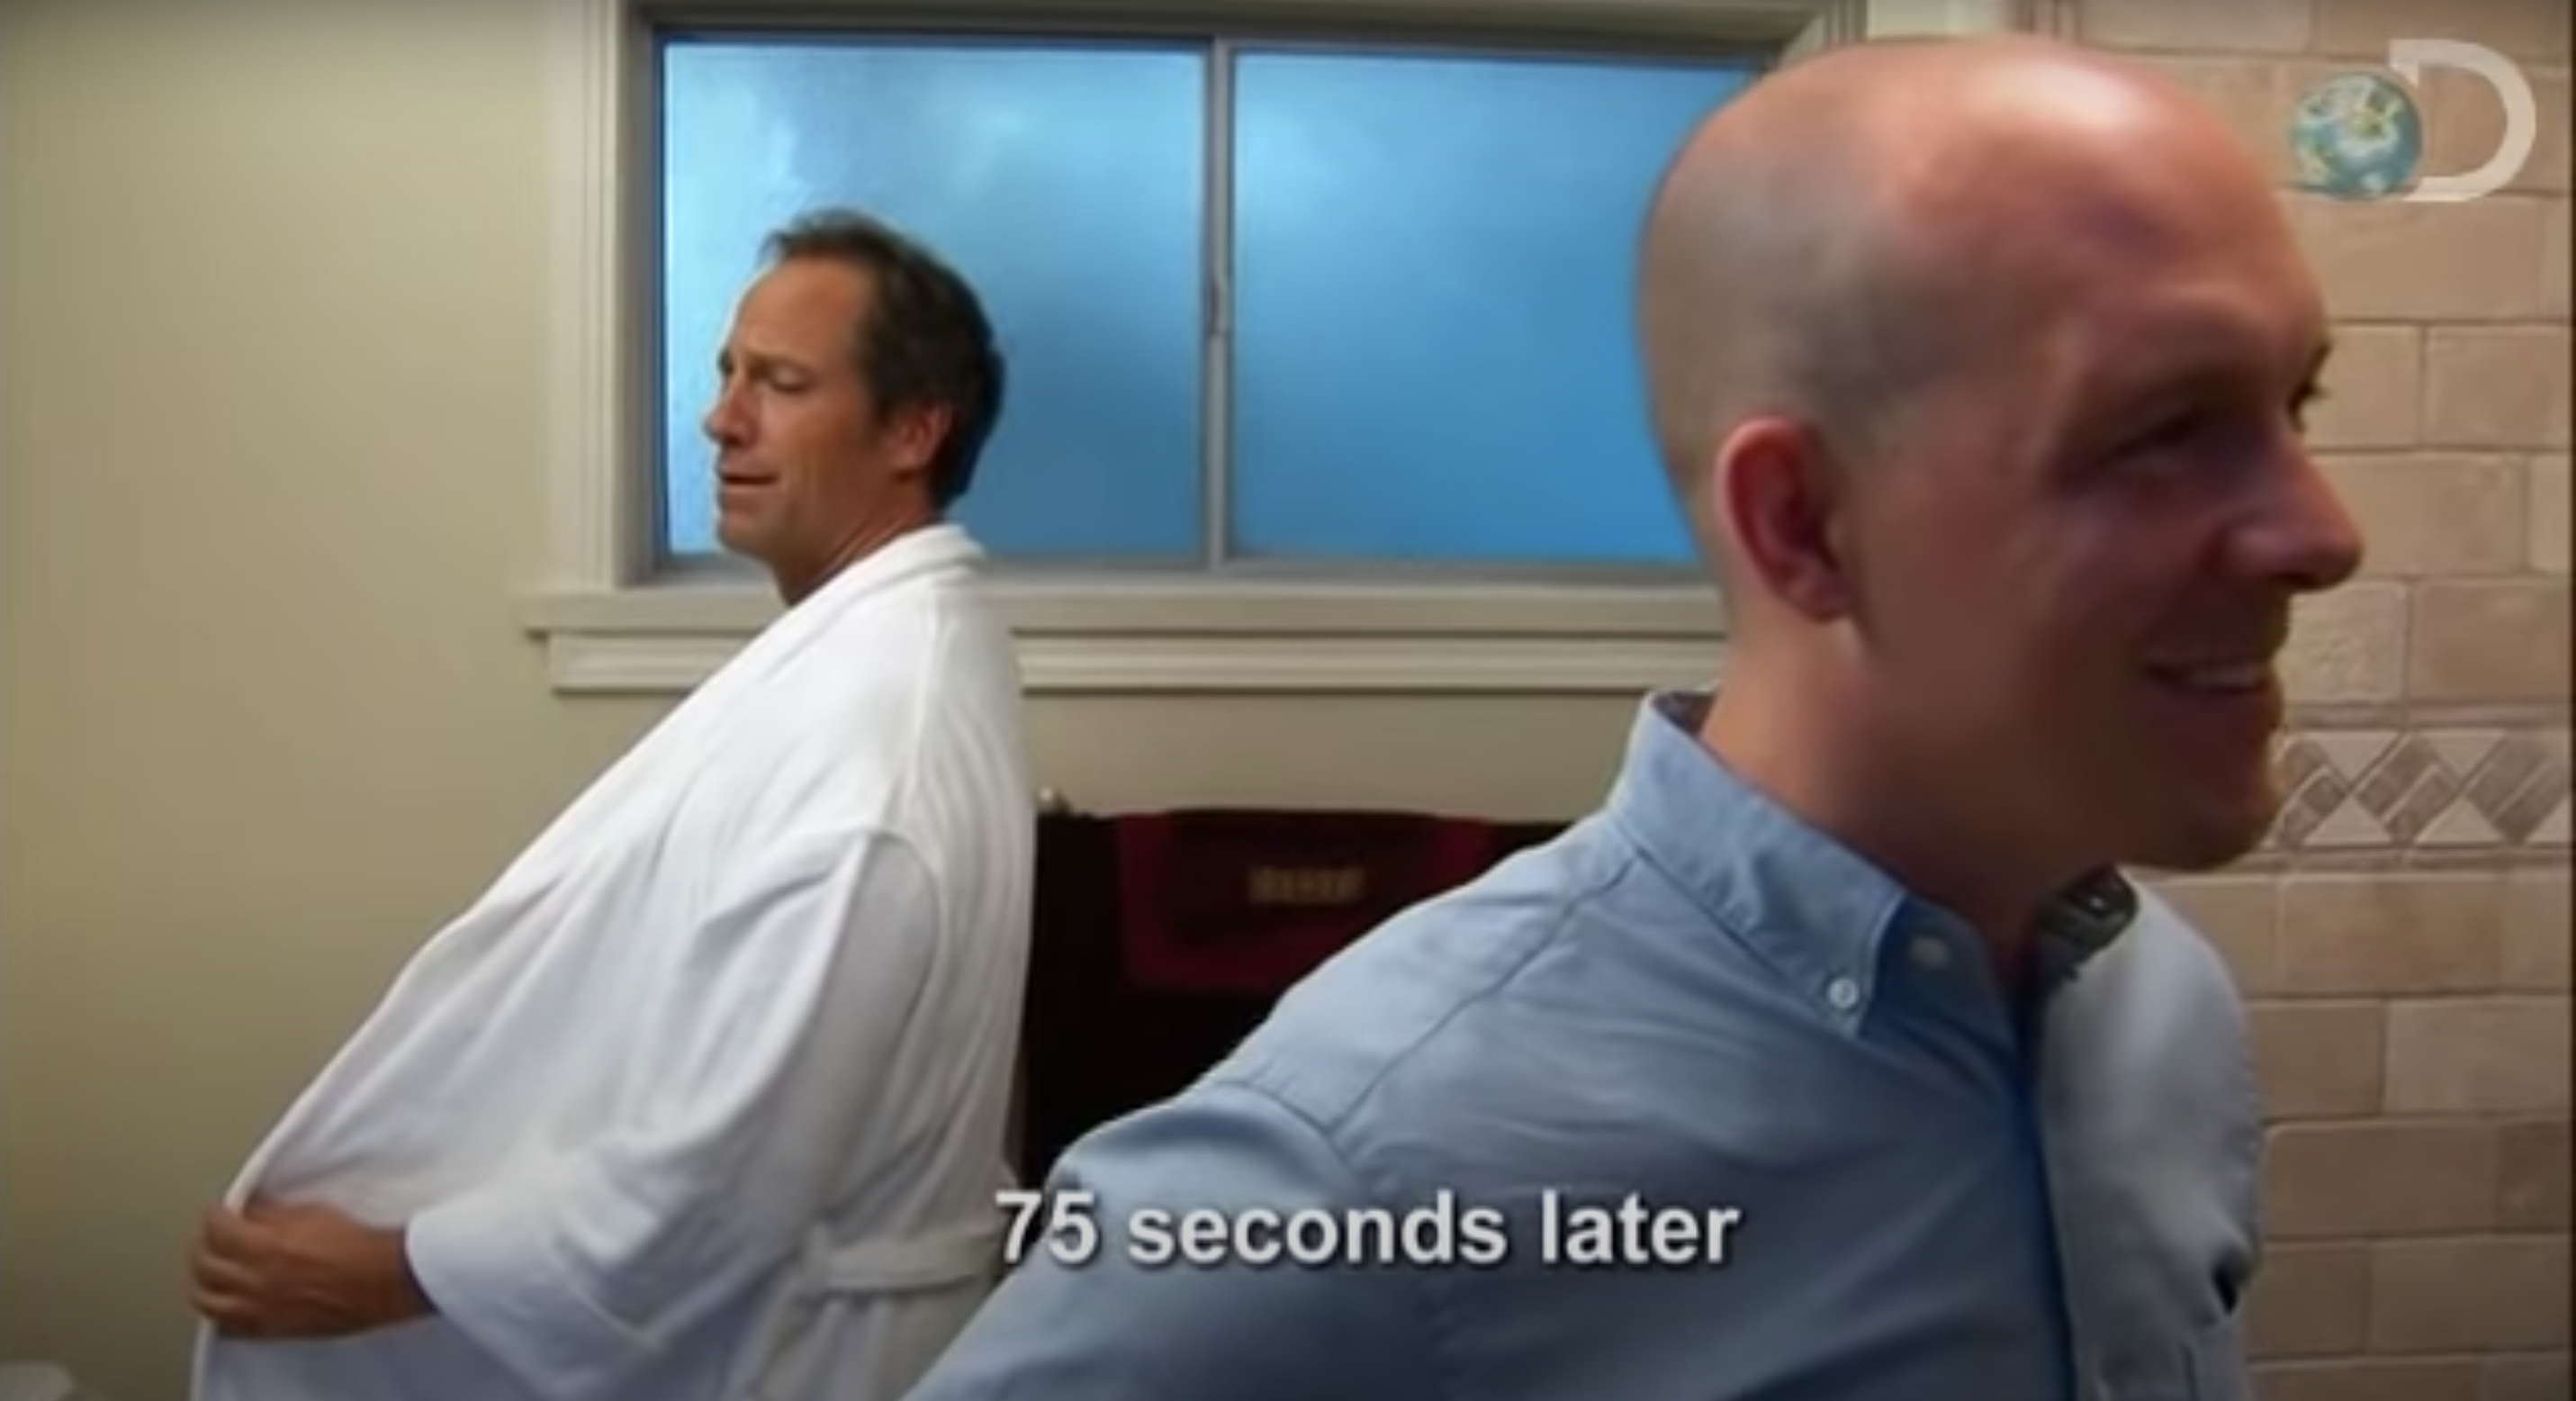 Mike holding his robe open and peeing into a toilet as Dr. Don waits with his back to him